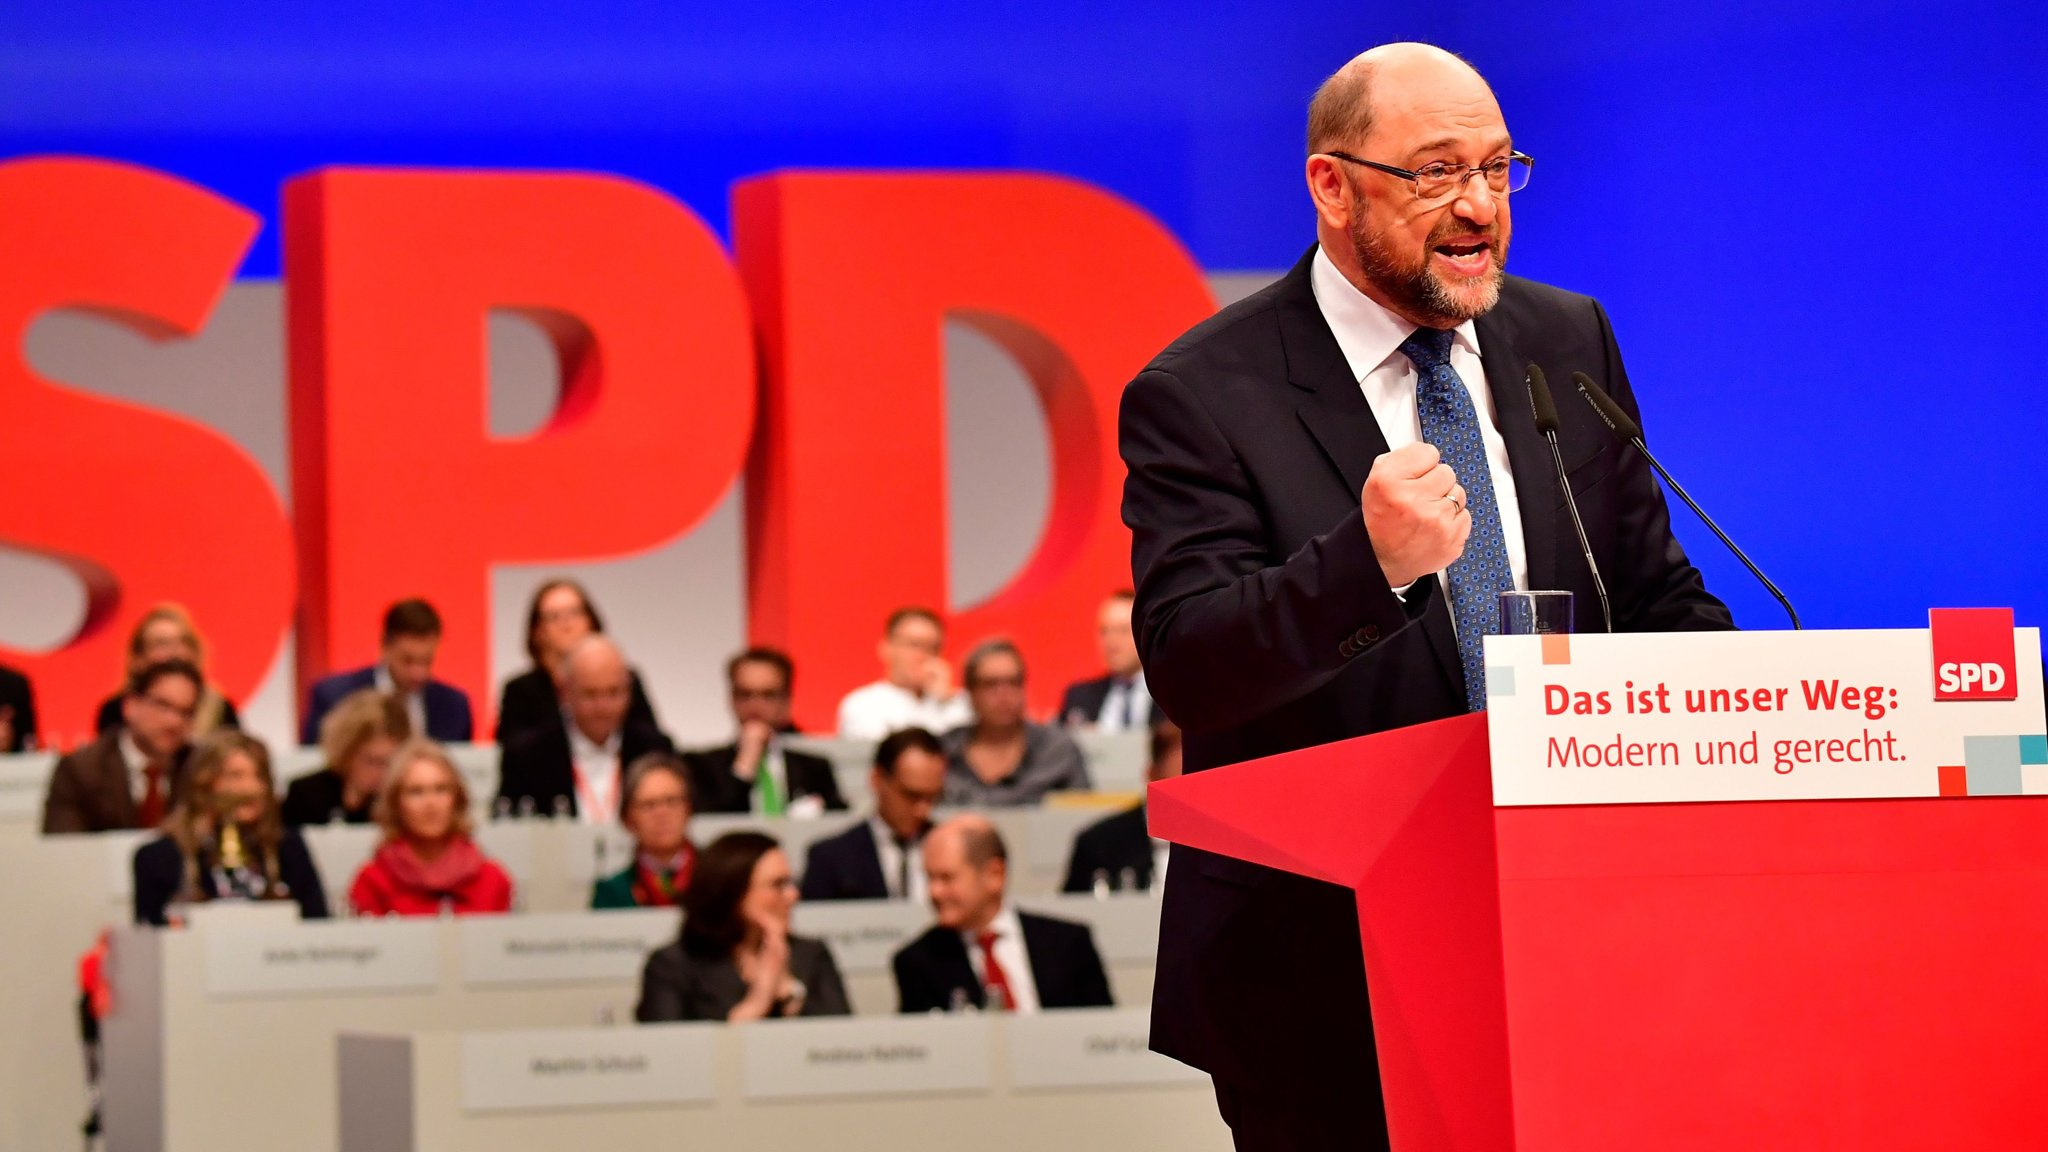 Martin Schulz calls for 'United States of Europe'